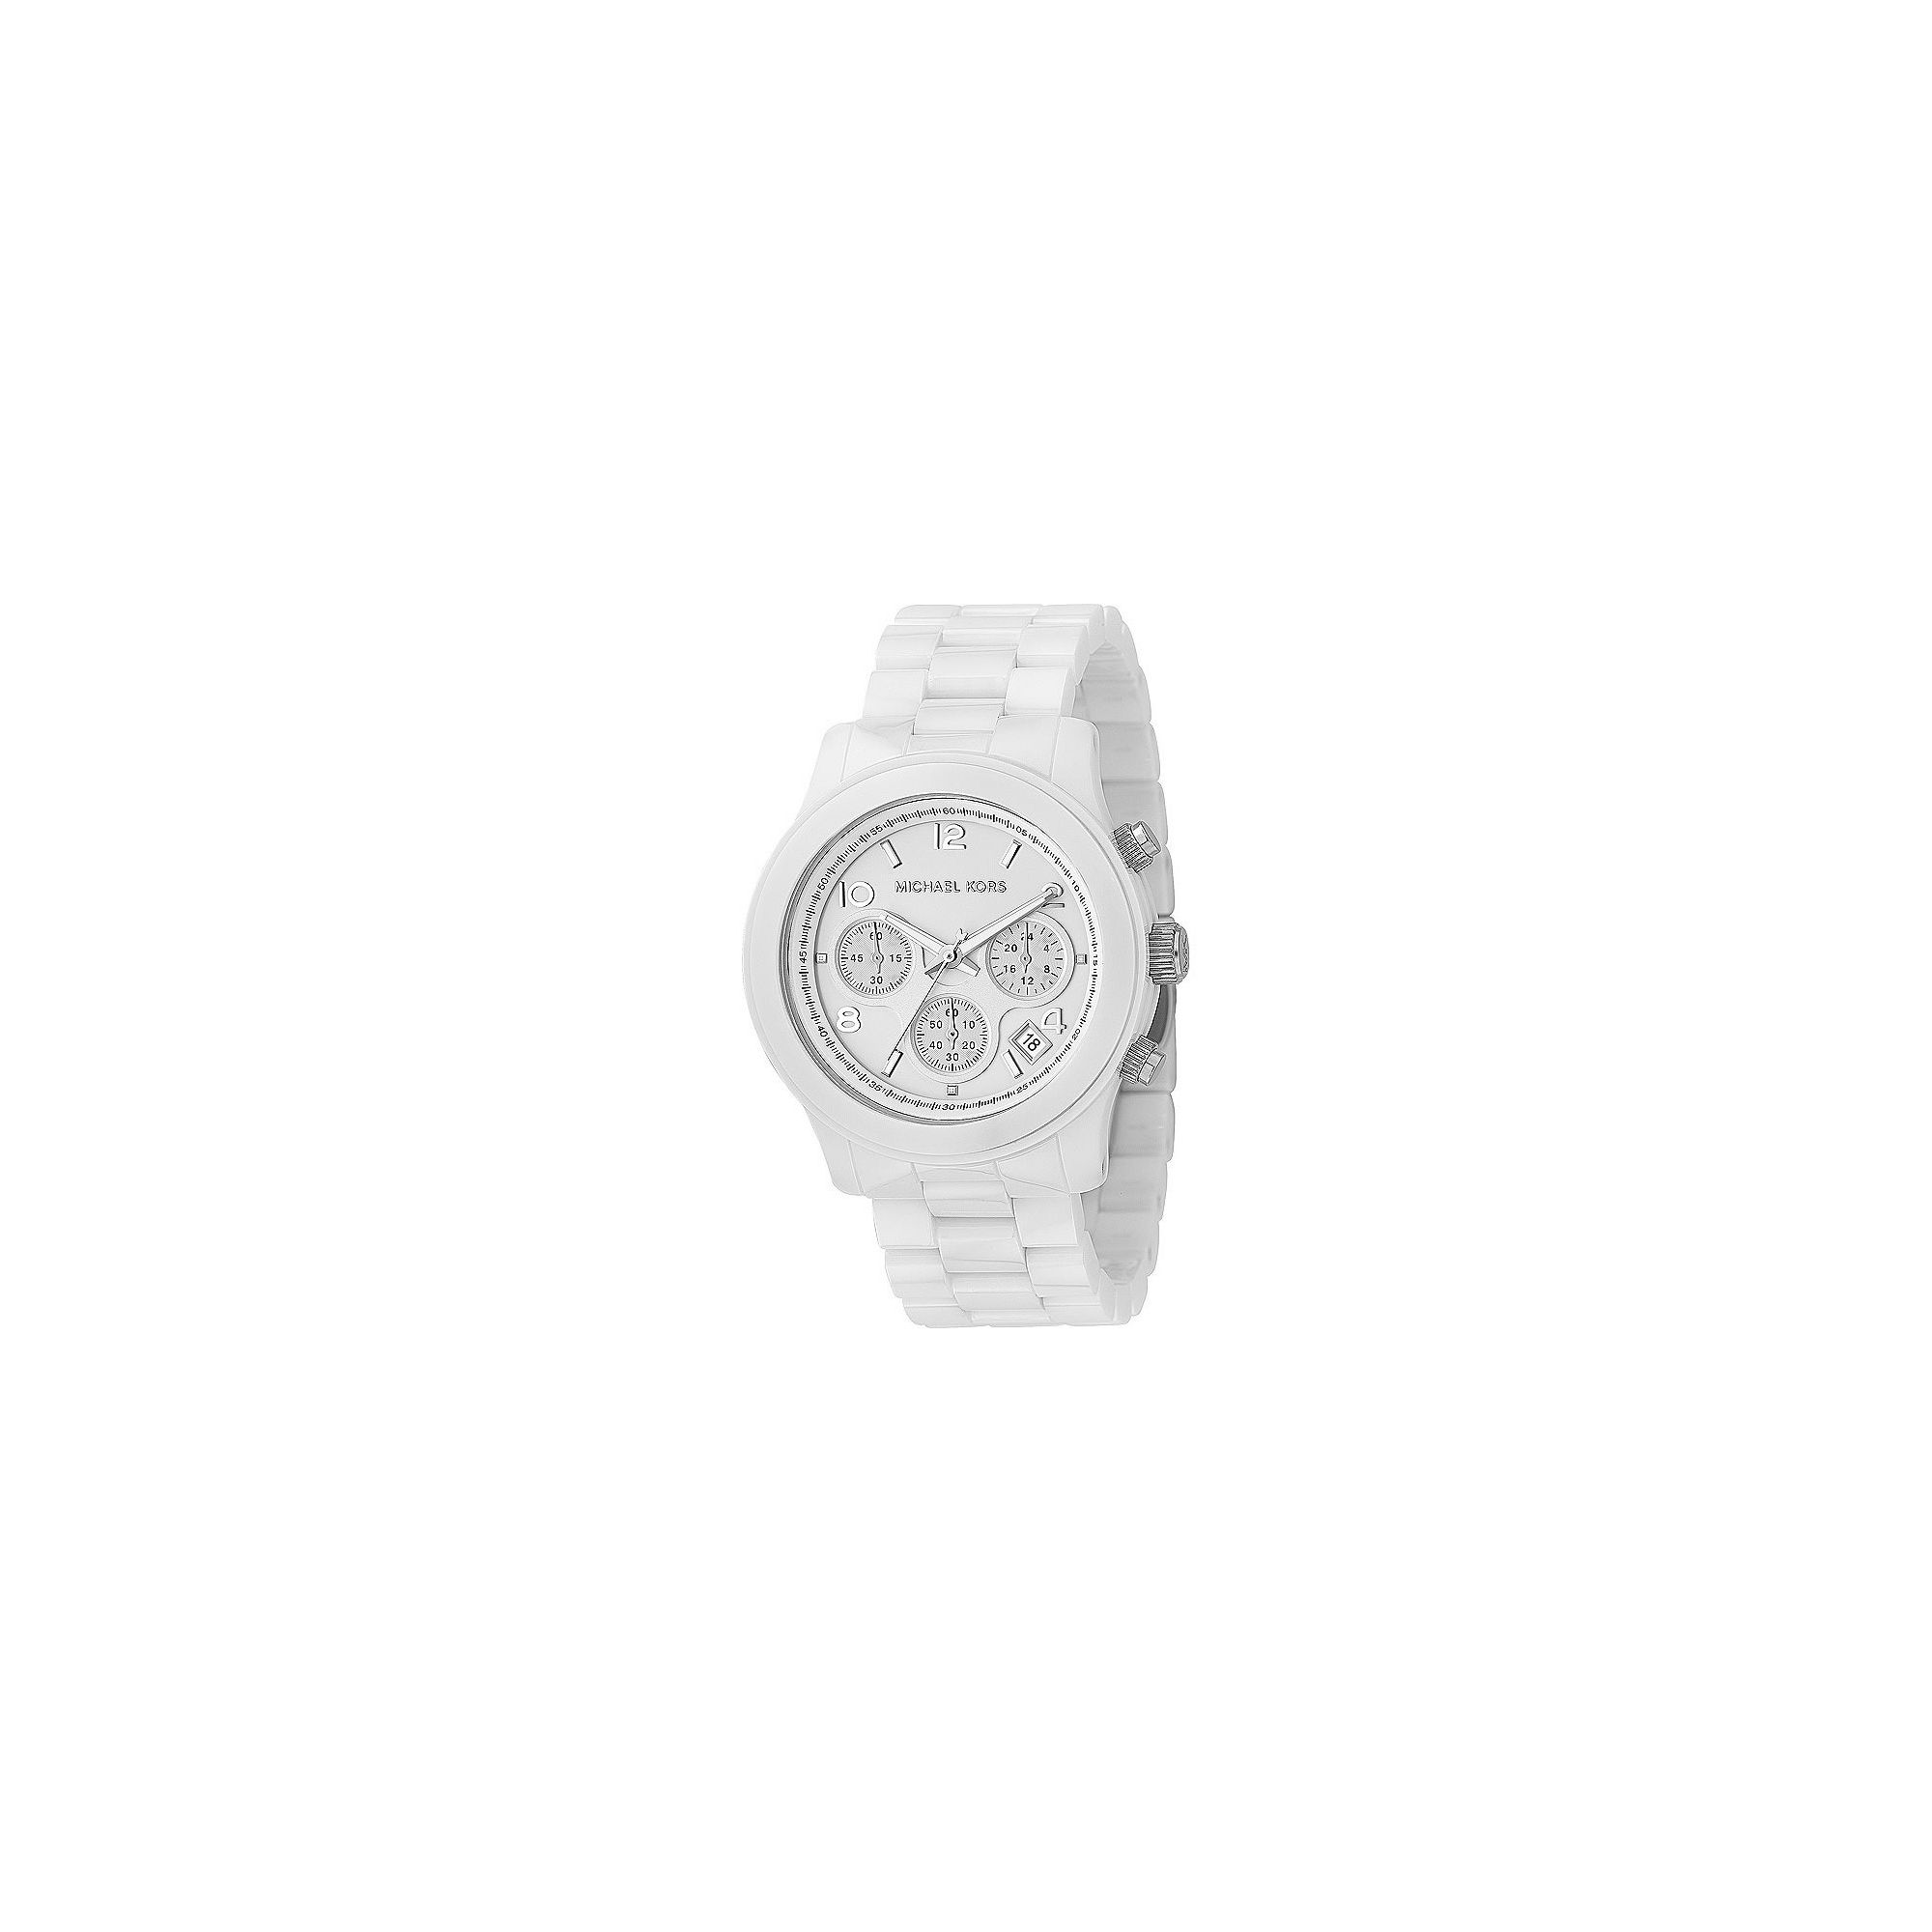 Michael Kors Unisex Watch MK5163 at Tesco Direct